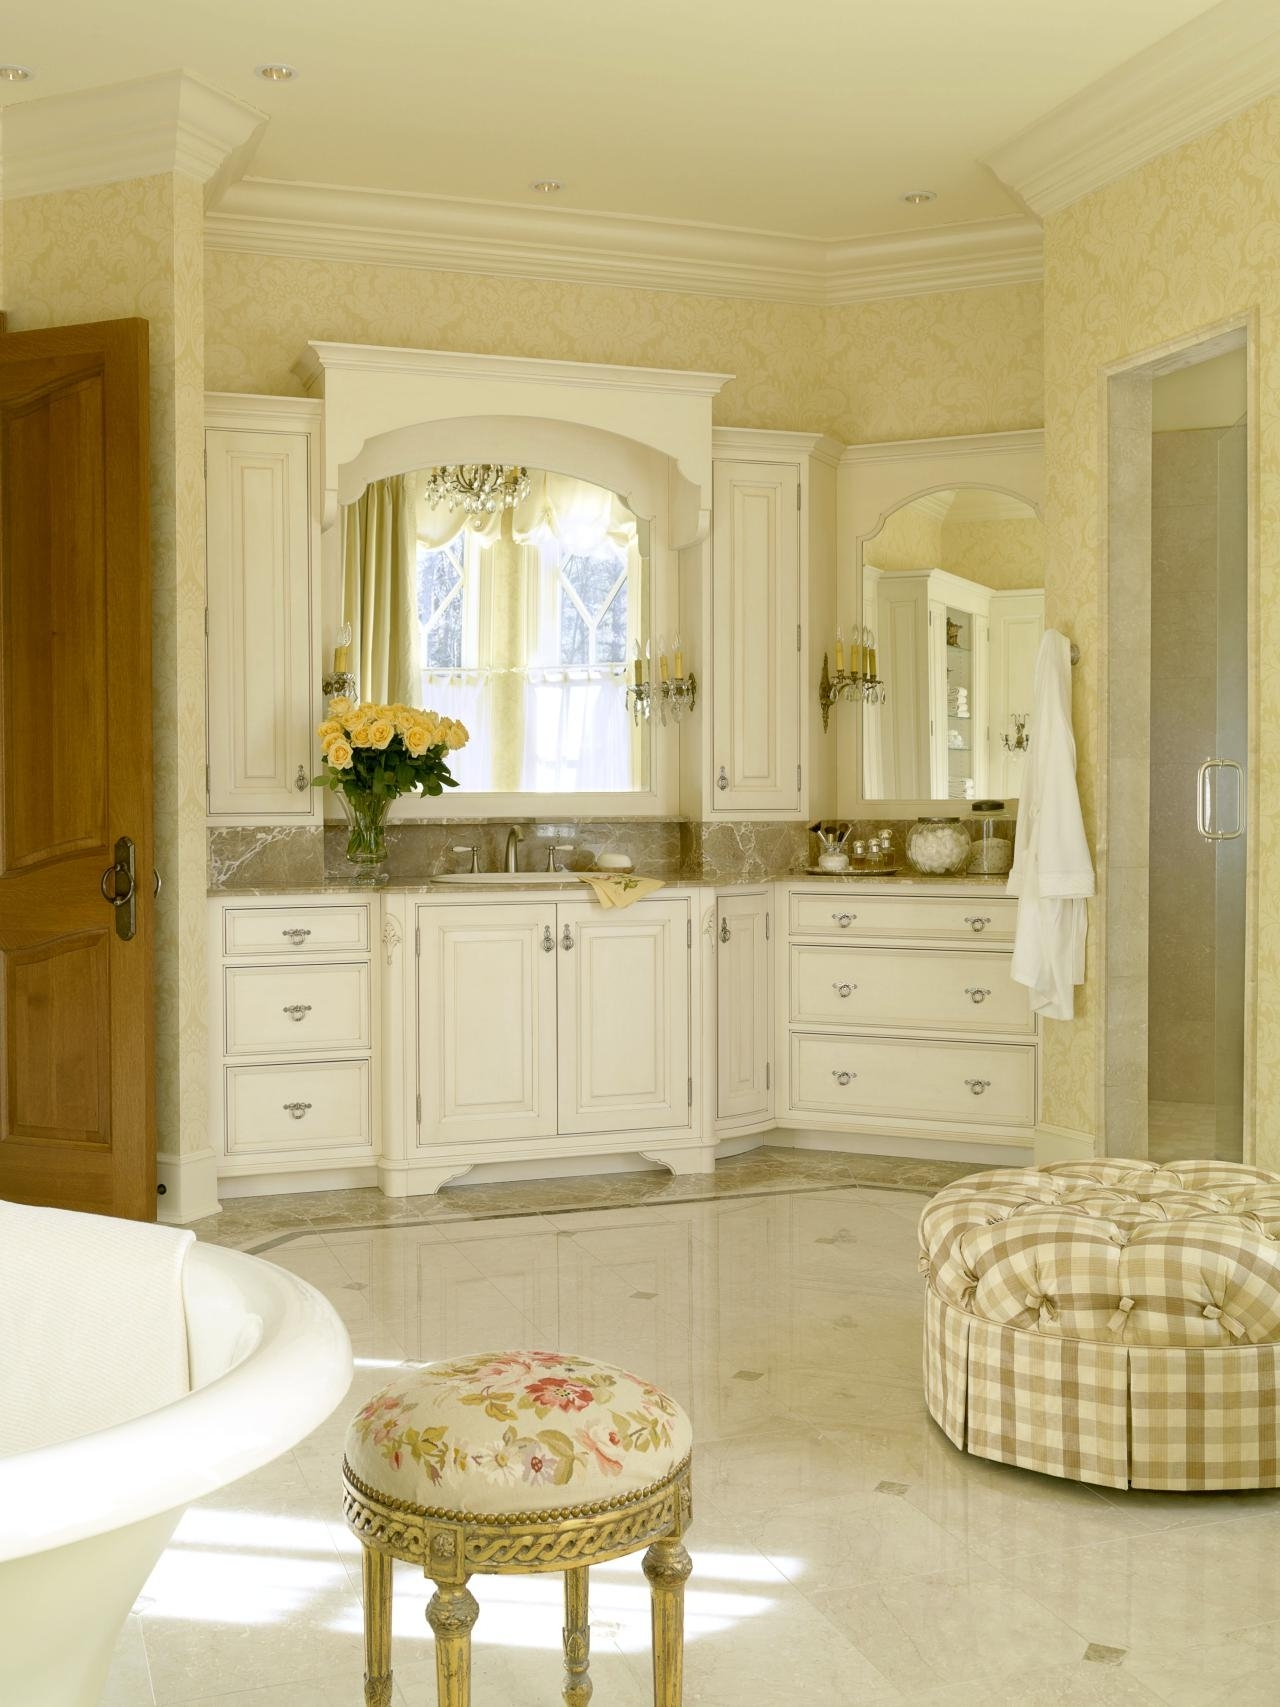 French Country Bathroom Design: Hgtv Pictures & Ideas | Hgtv 40+ Provincial Bathroom Design Ideas